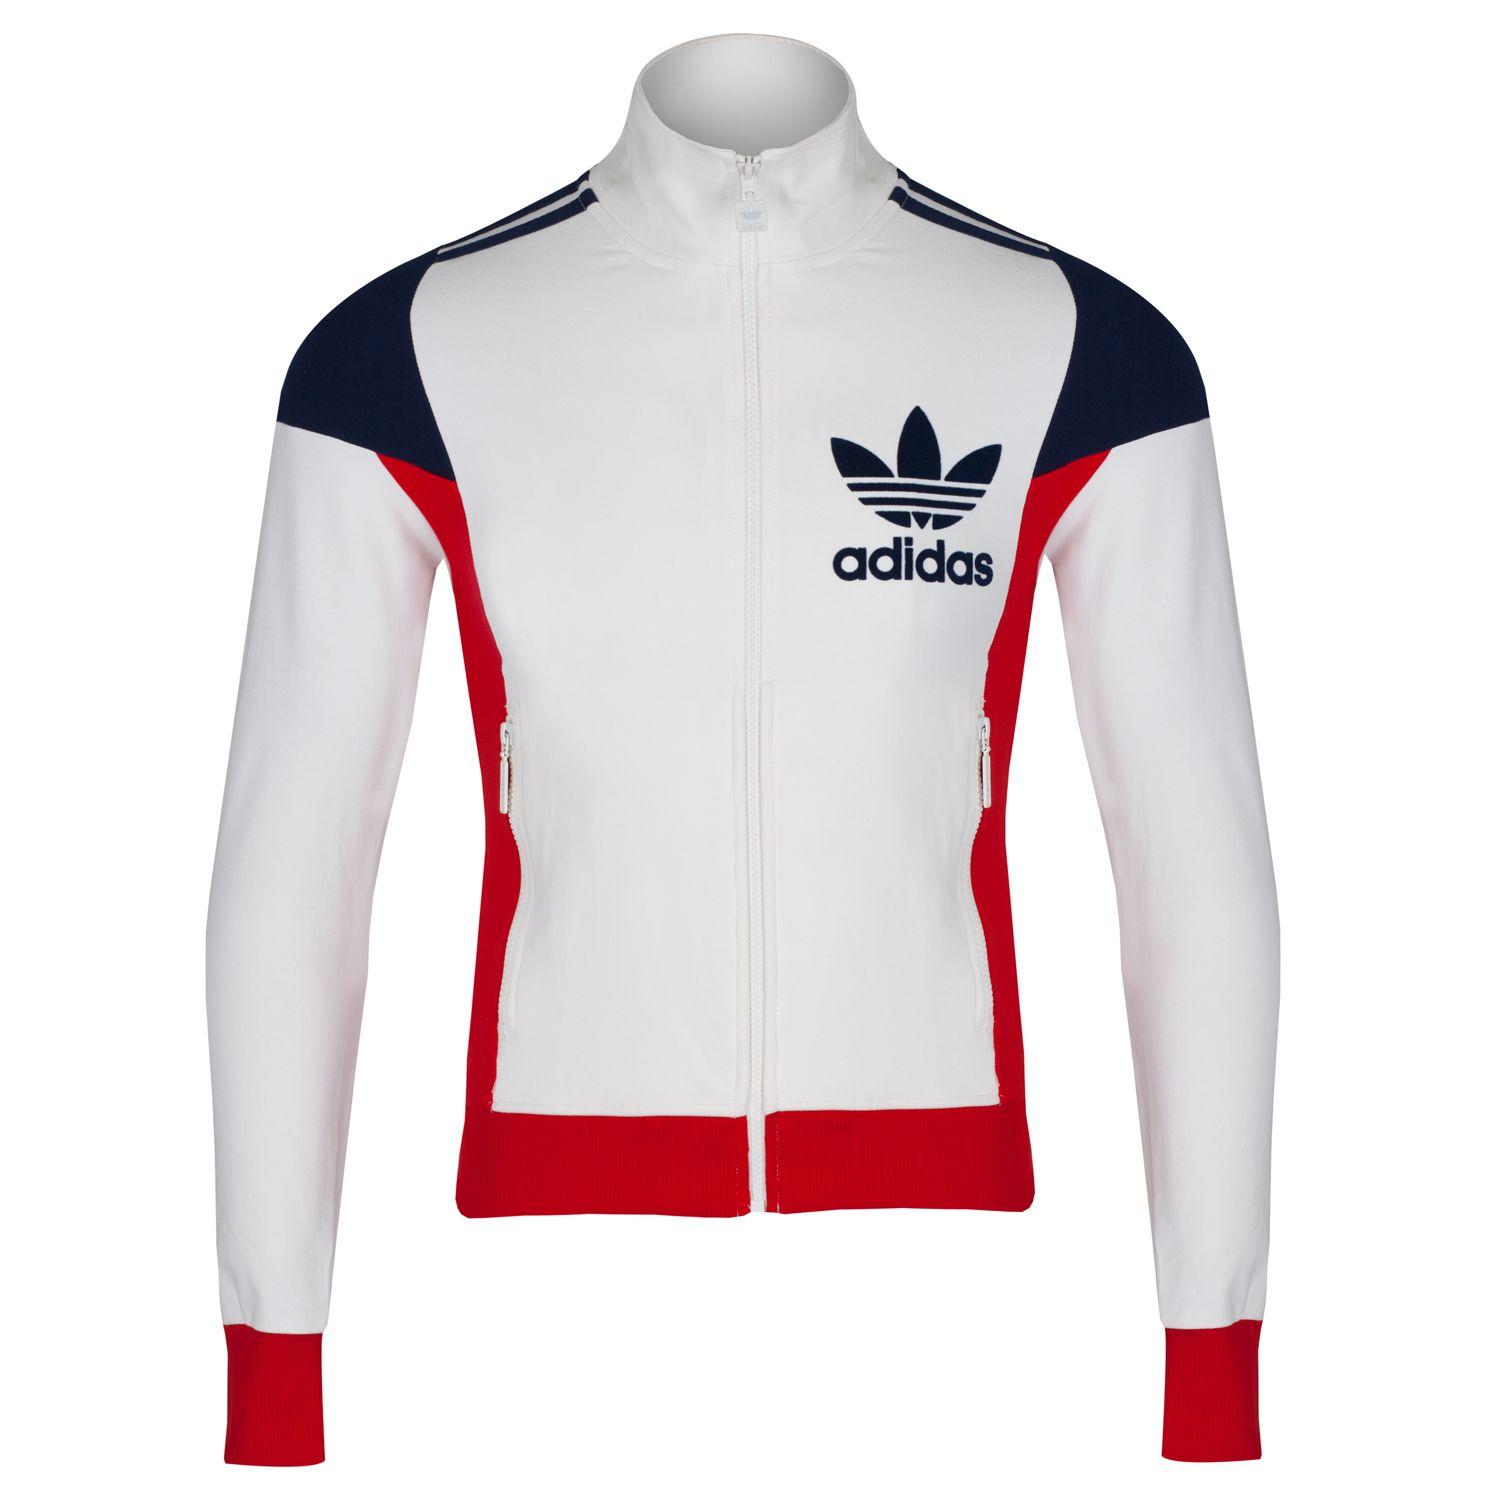 7fcae2c1b9e adidas-Originals-Mens-3-Stripe-80s-Retro-Track-Top-Tracksuit -Slim-Fit-B-Grade